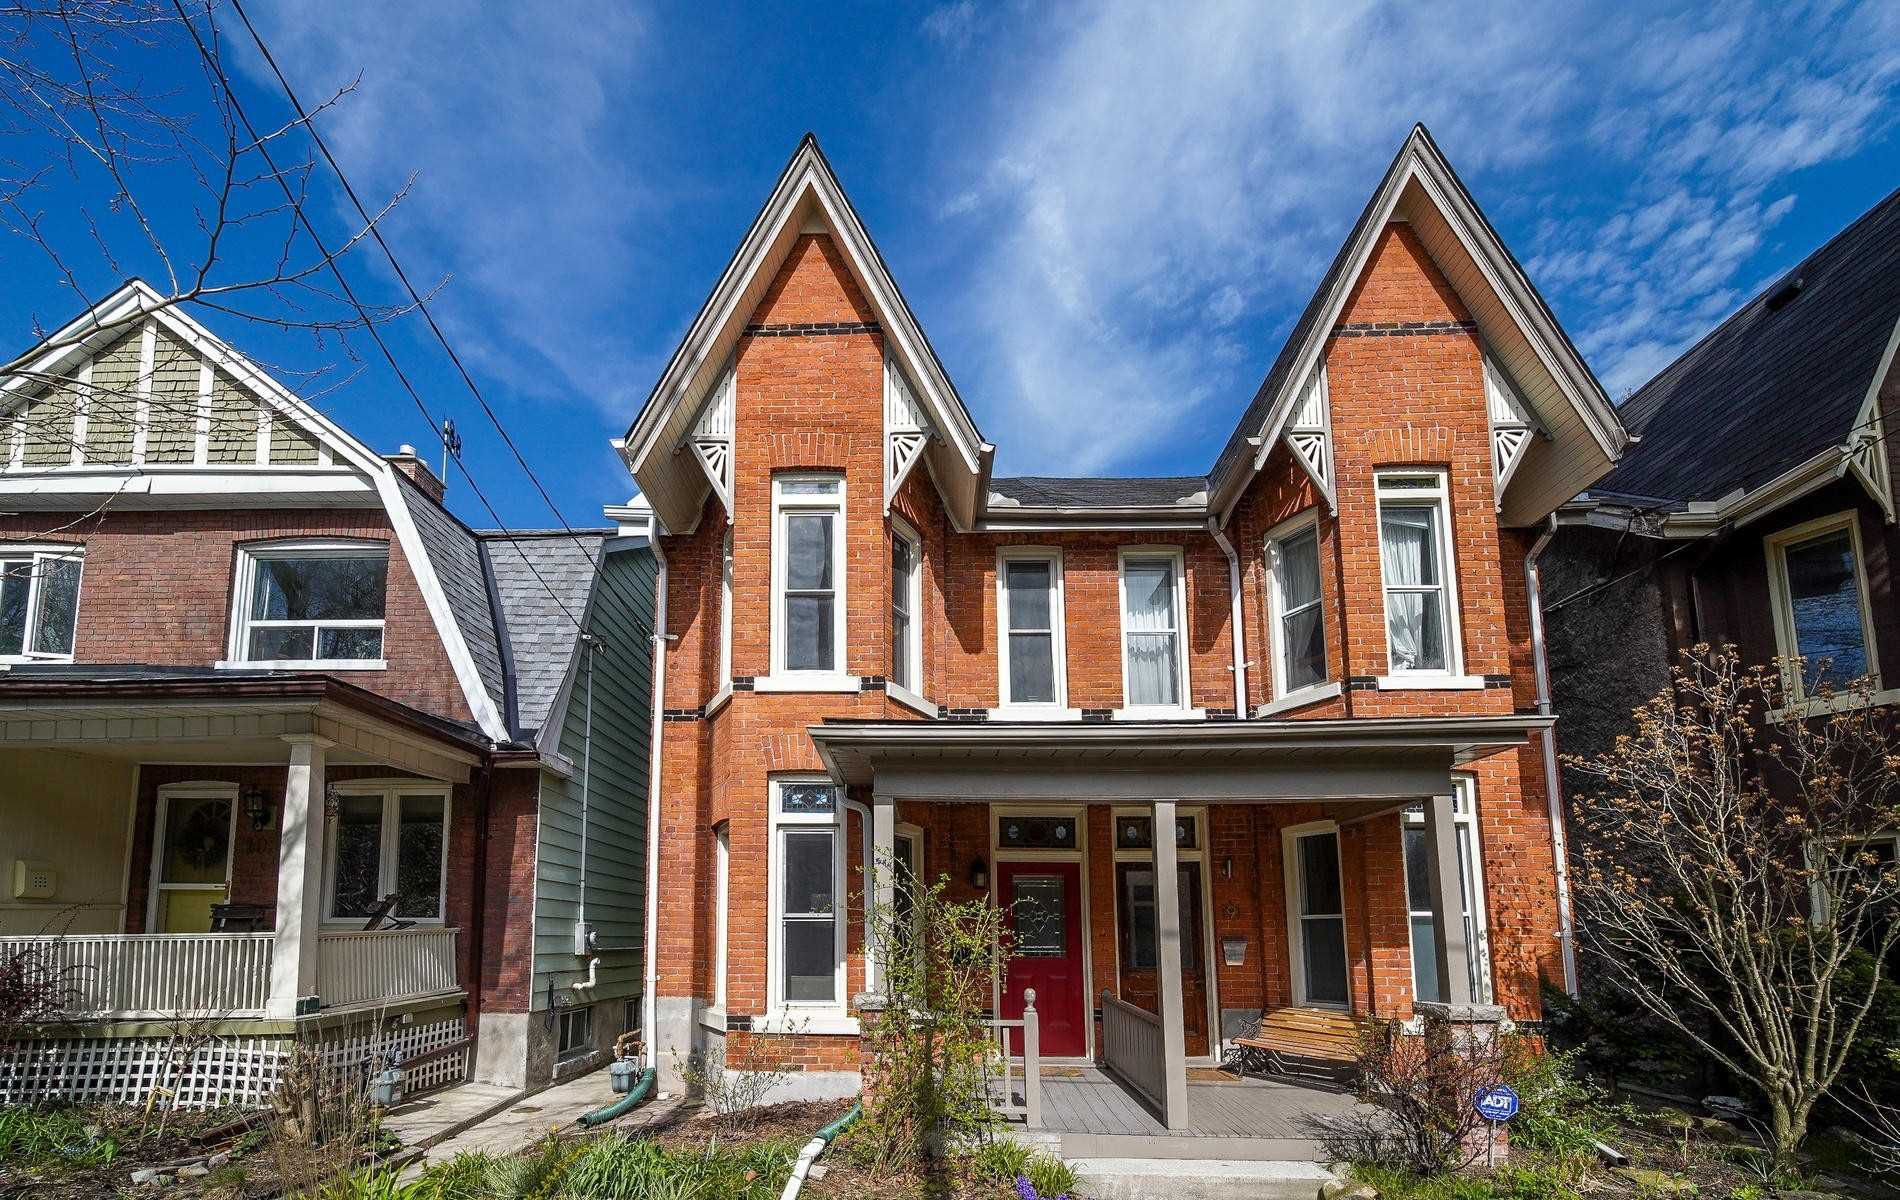 Main Photo: 193 Pape Avenue in Toronto: South Riverdale House (2-Storey) for sale (Toronto E01)  : MLS®# E4442818